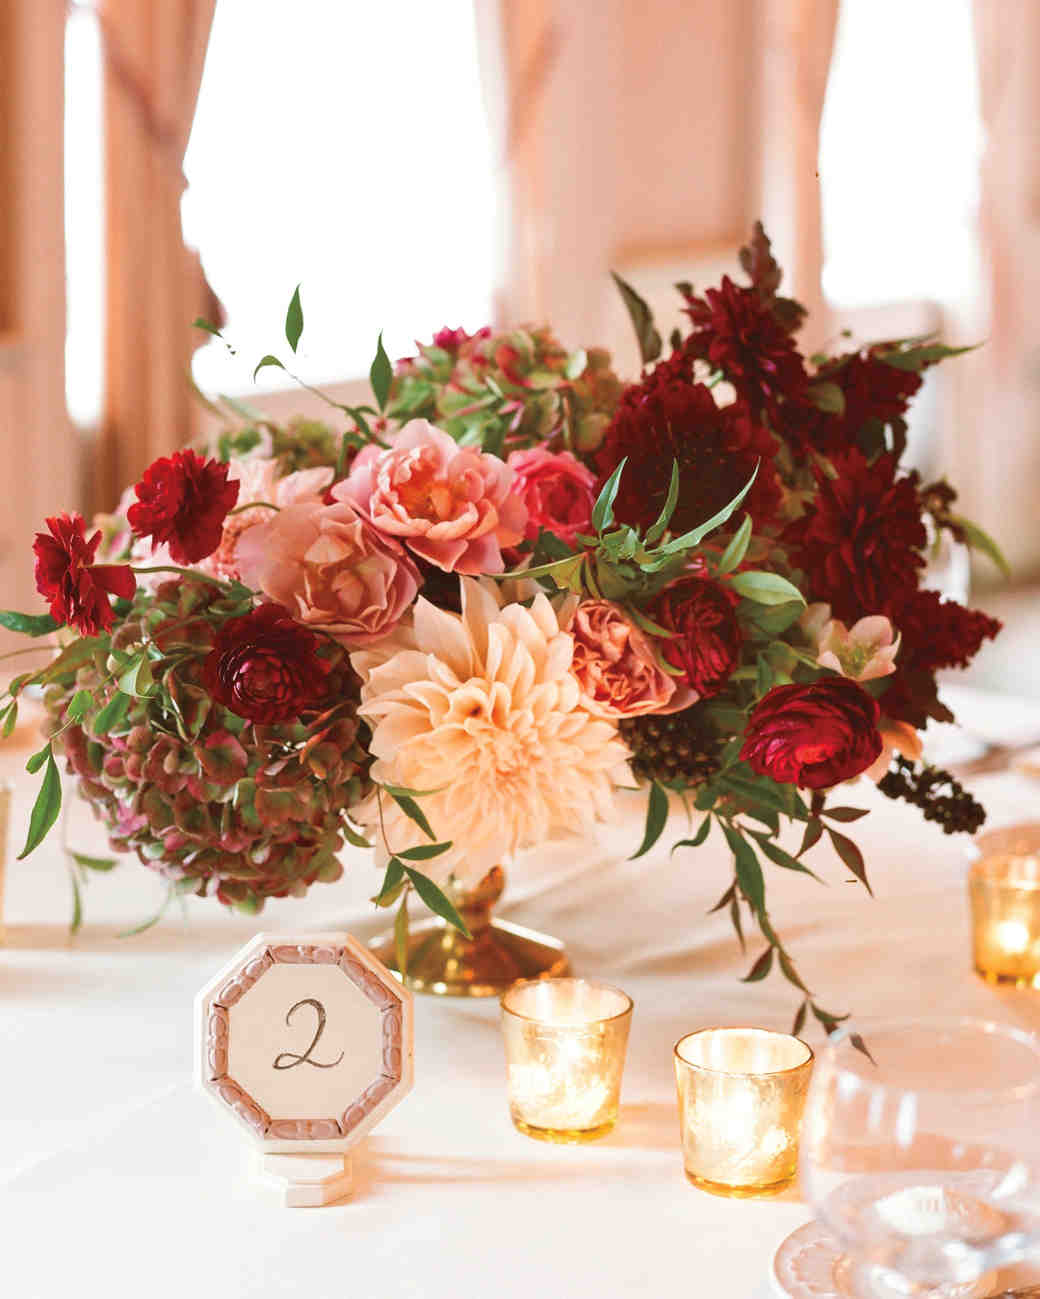 Wedding Flower Arrangements: 50 Wedding Centerpiece Ideas We Love